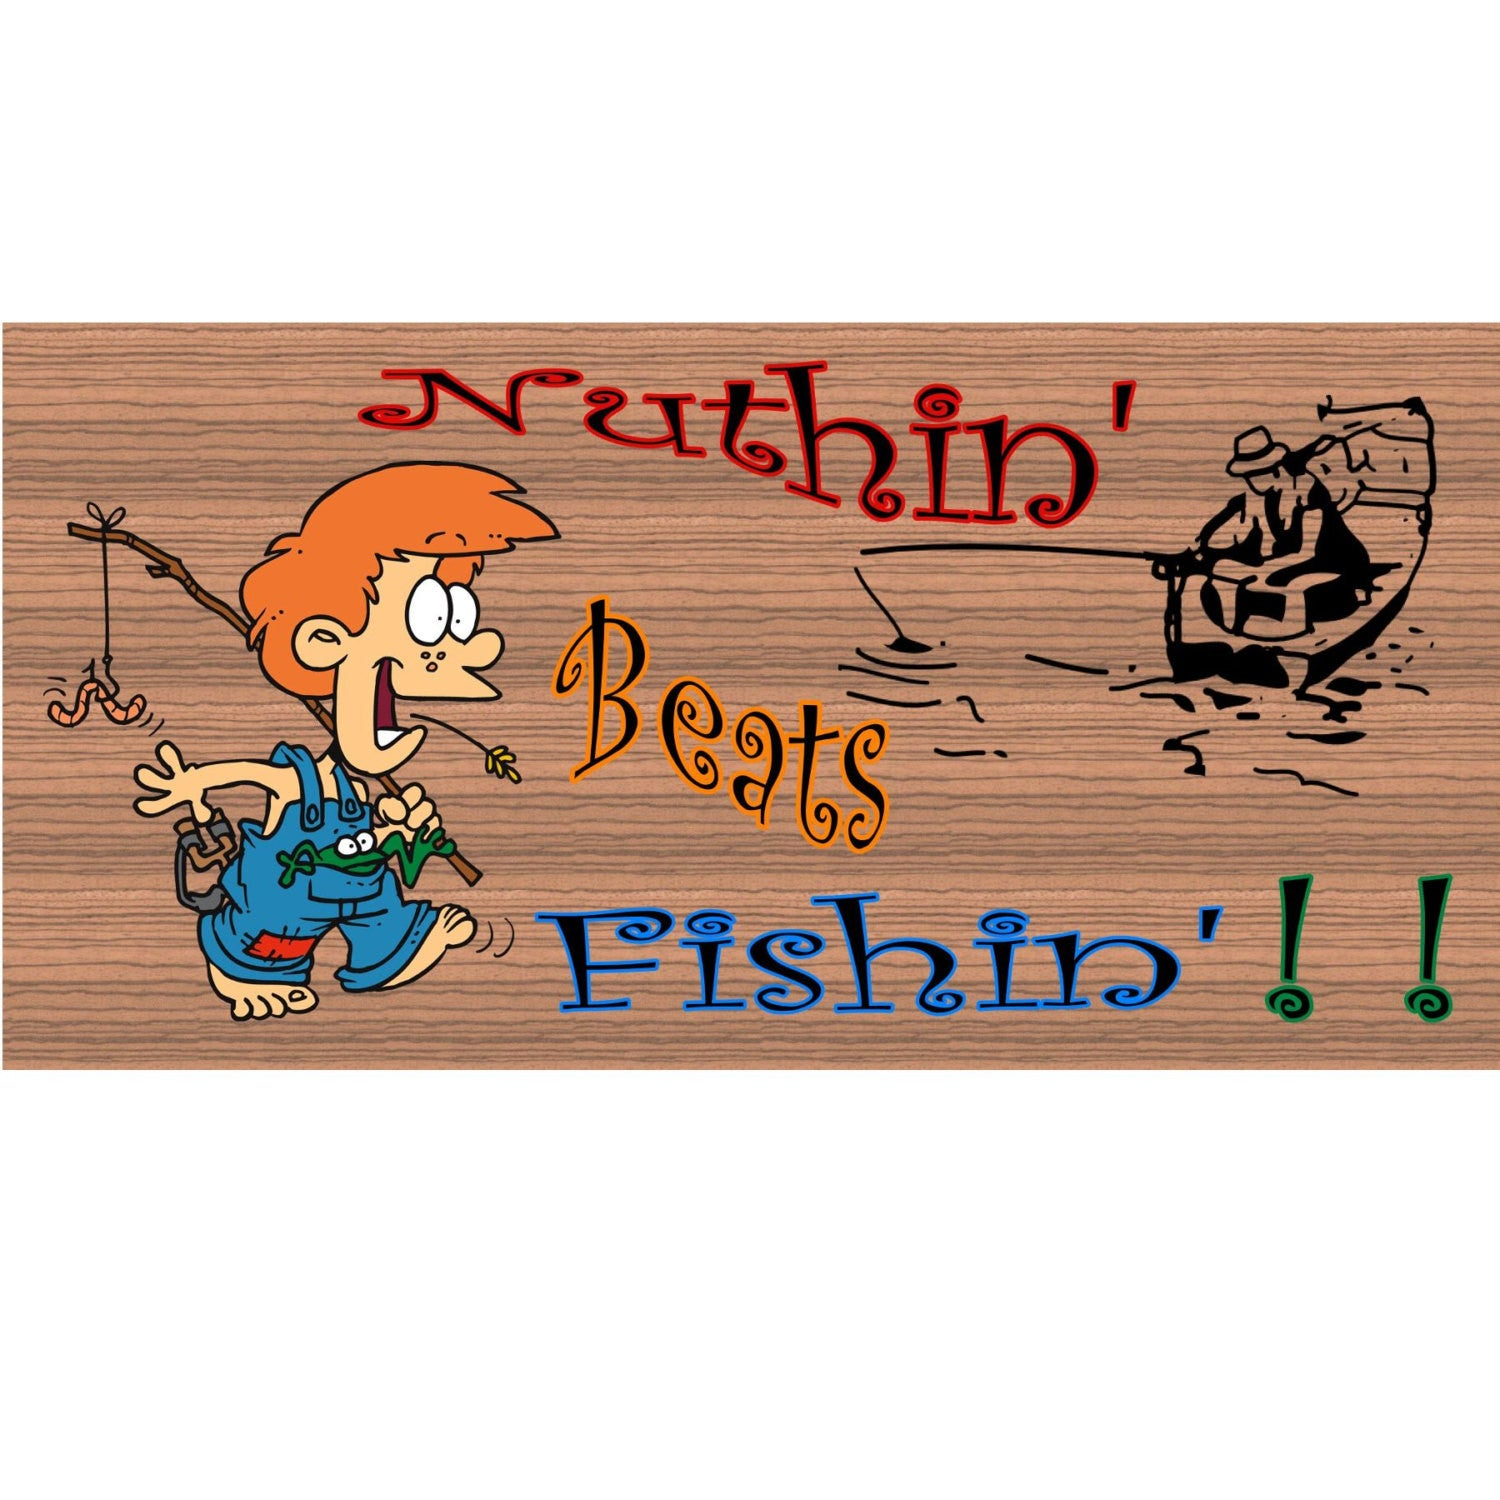 Fishing Wood Signs - Nothin Beats Fishin - GS 2007 - Fishing plaquen